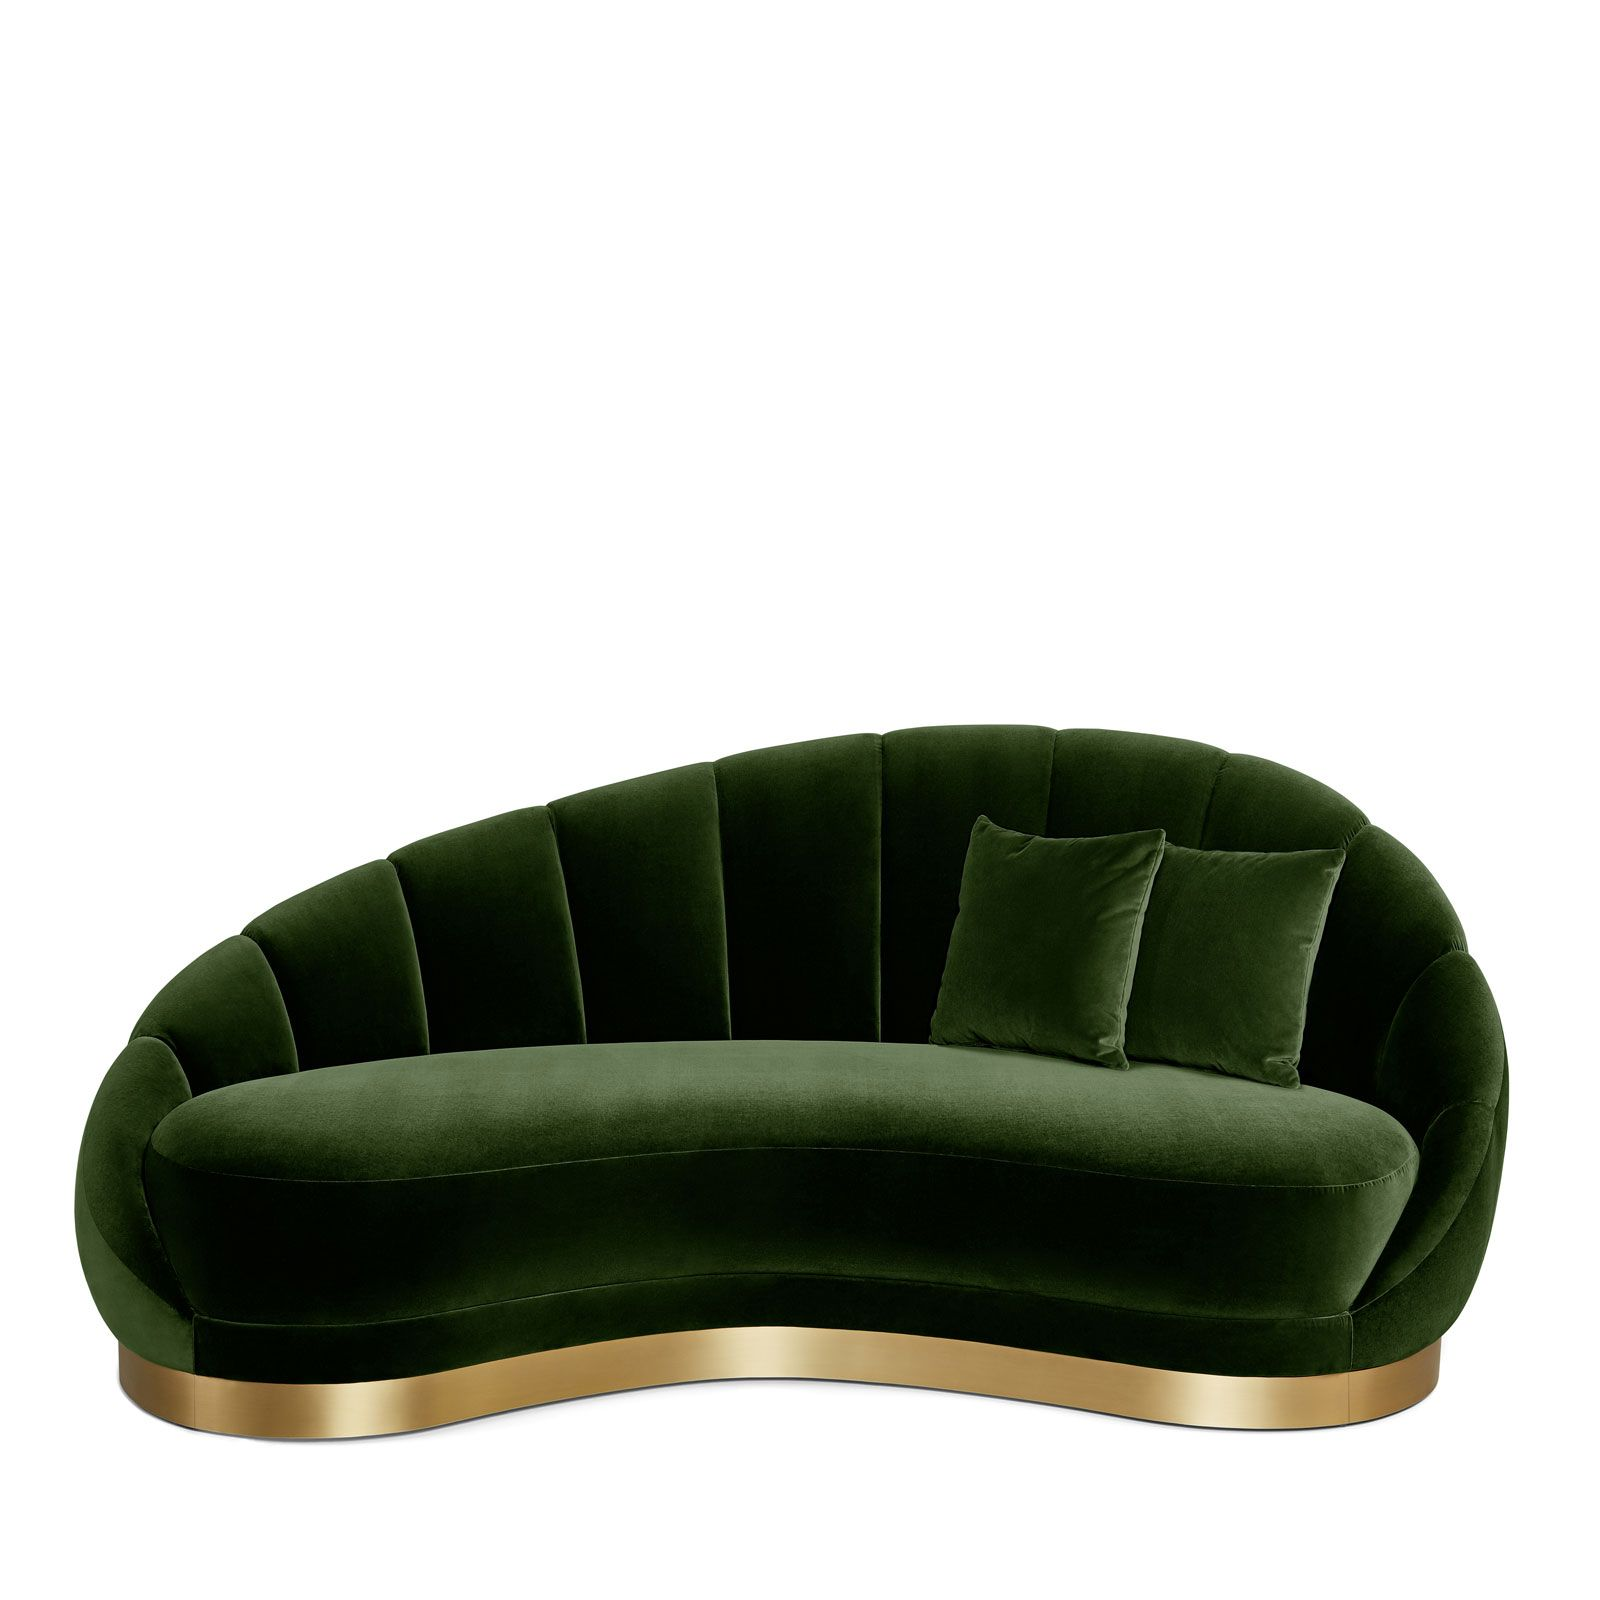 Art Deco Style Curved Sofa in Hunter Green Velvet with Brass Toe